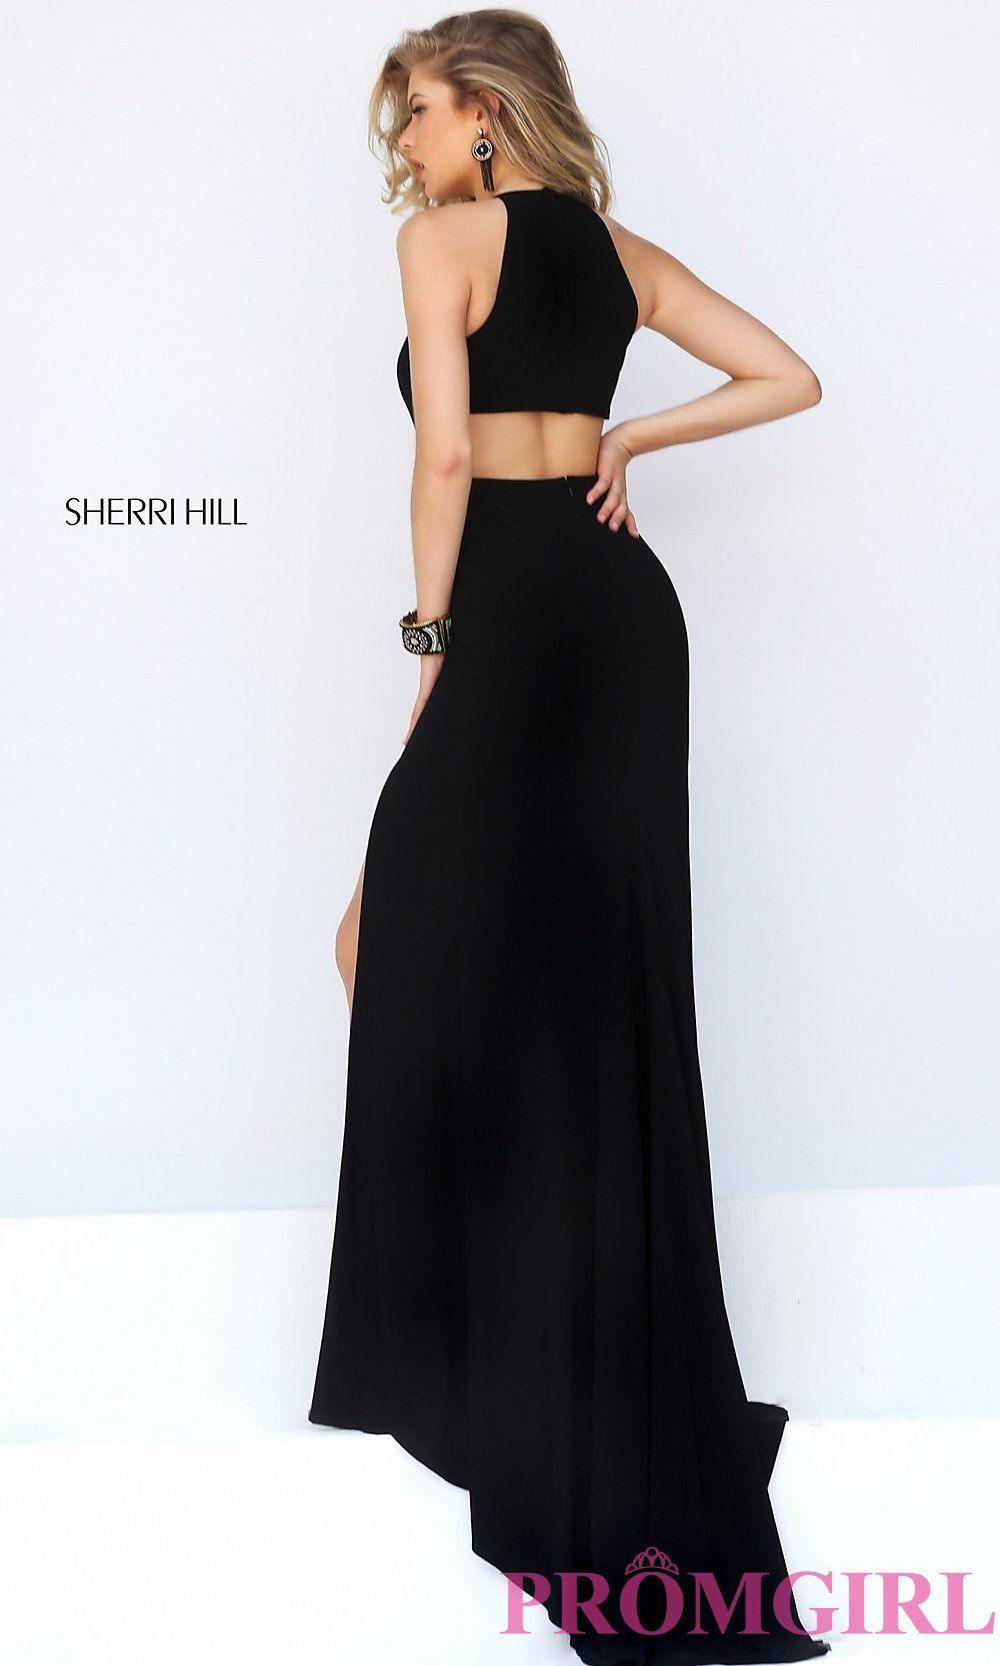 I like style sh from promgirl do you like dresses